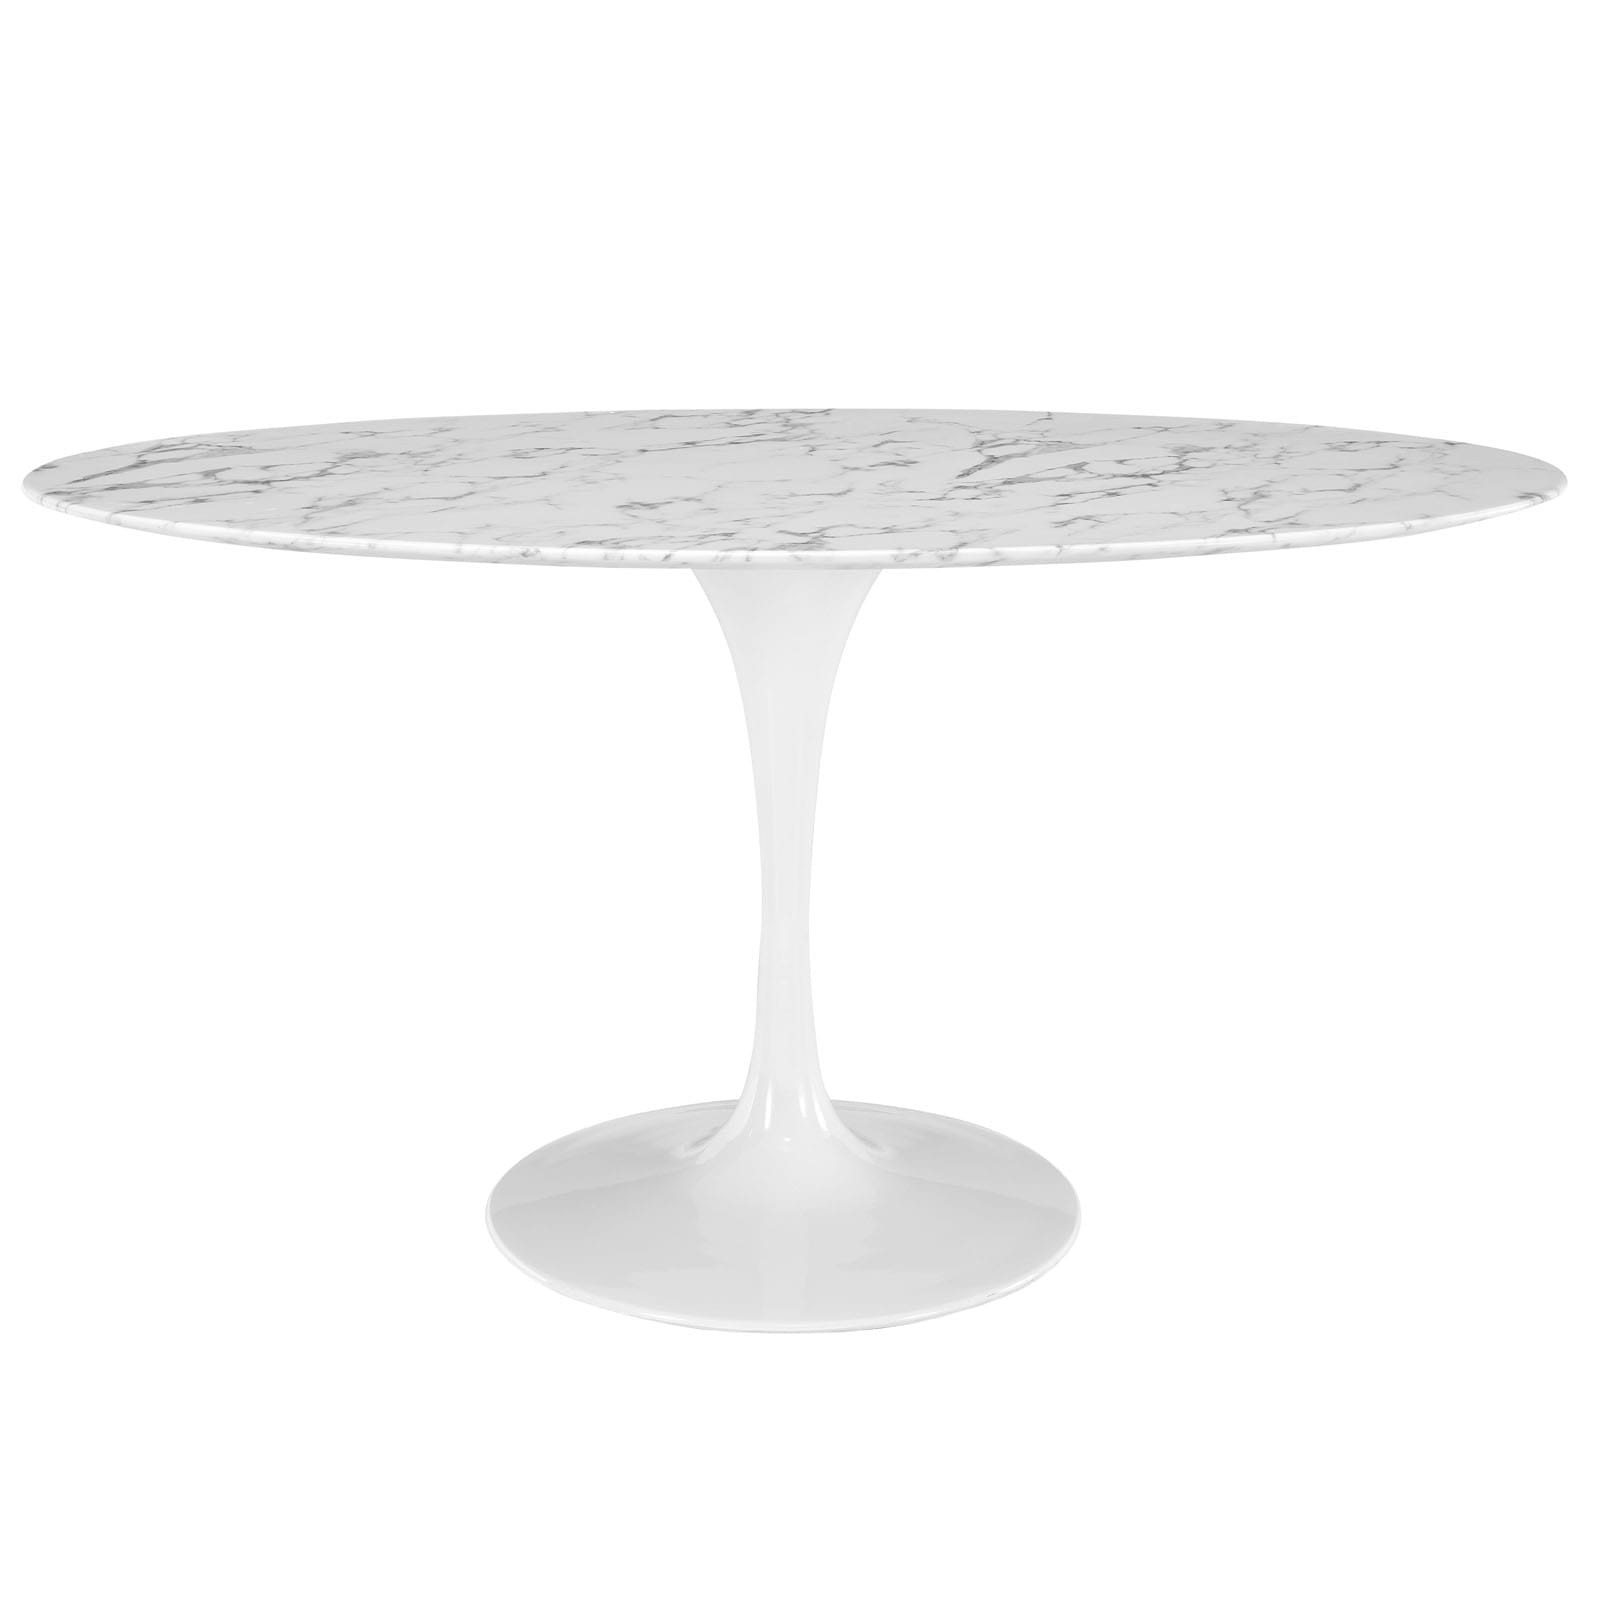 "Lippa 60"" Oval Marble Dining Table"